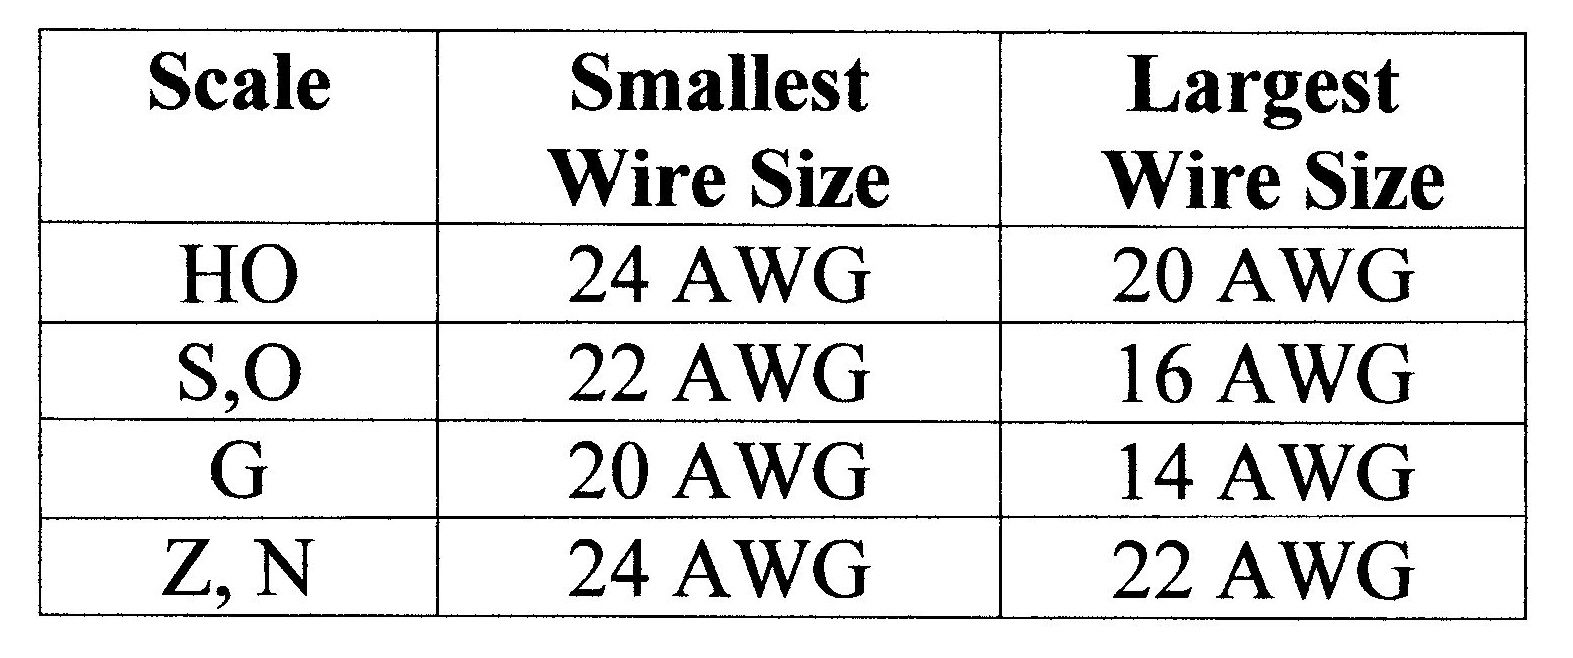 Wire gauge vs current dc electrical wiring for dummies sports field charming wire awg current gallery electrical circuit diagram 7edbb688e353509e08543fd586880973 wire awg current wire gauge vs current dc keyboard keysfo Images